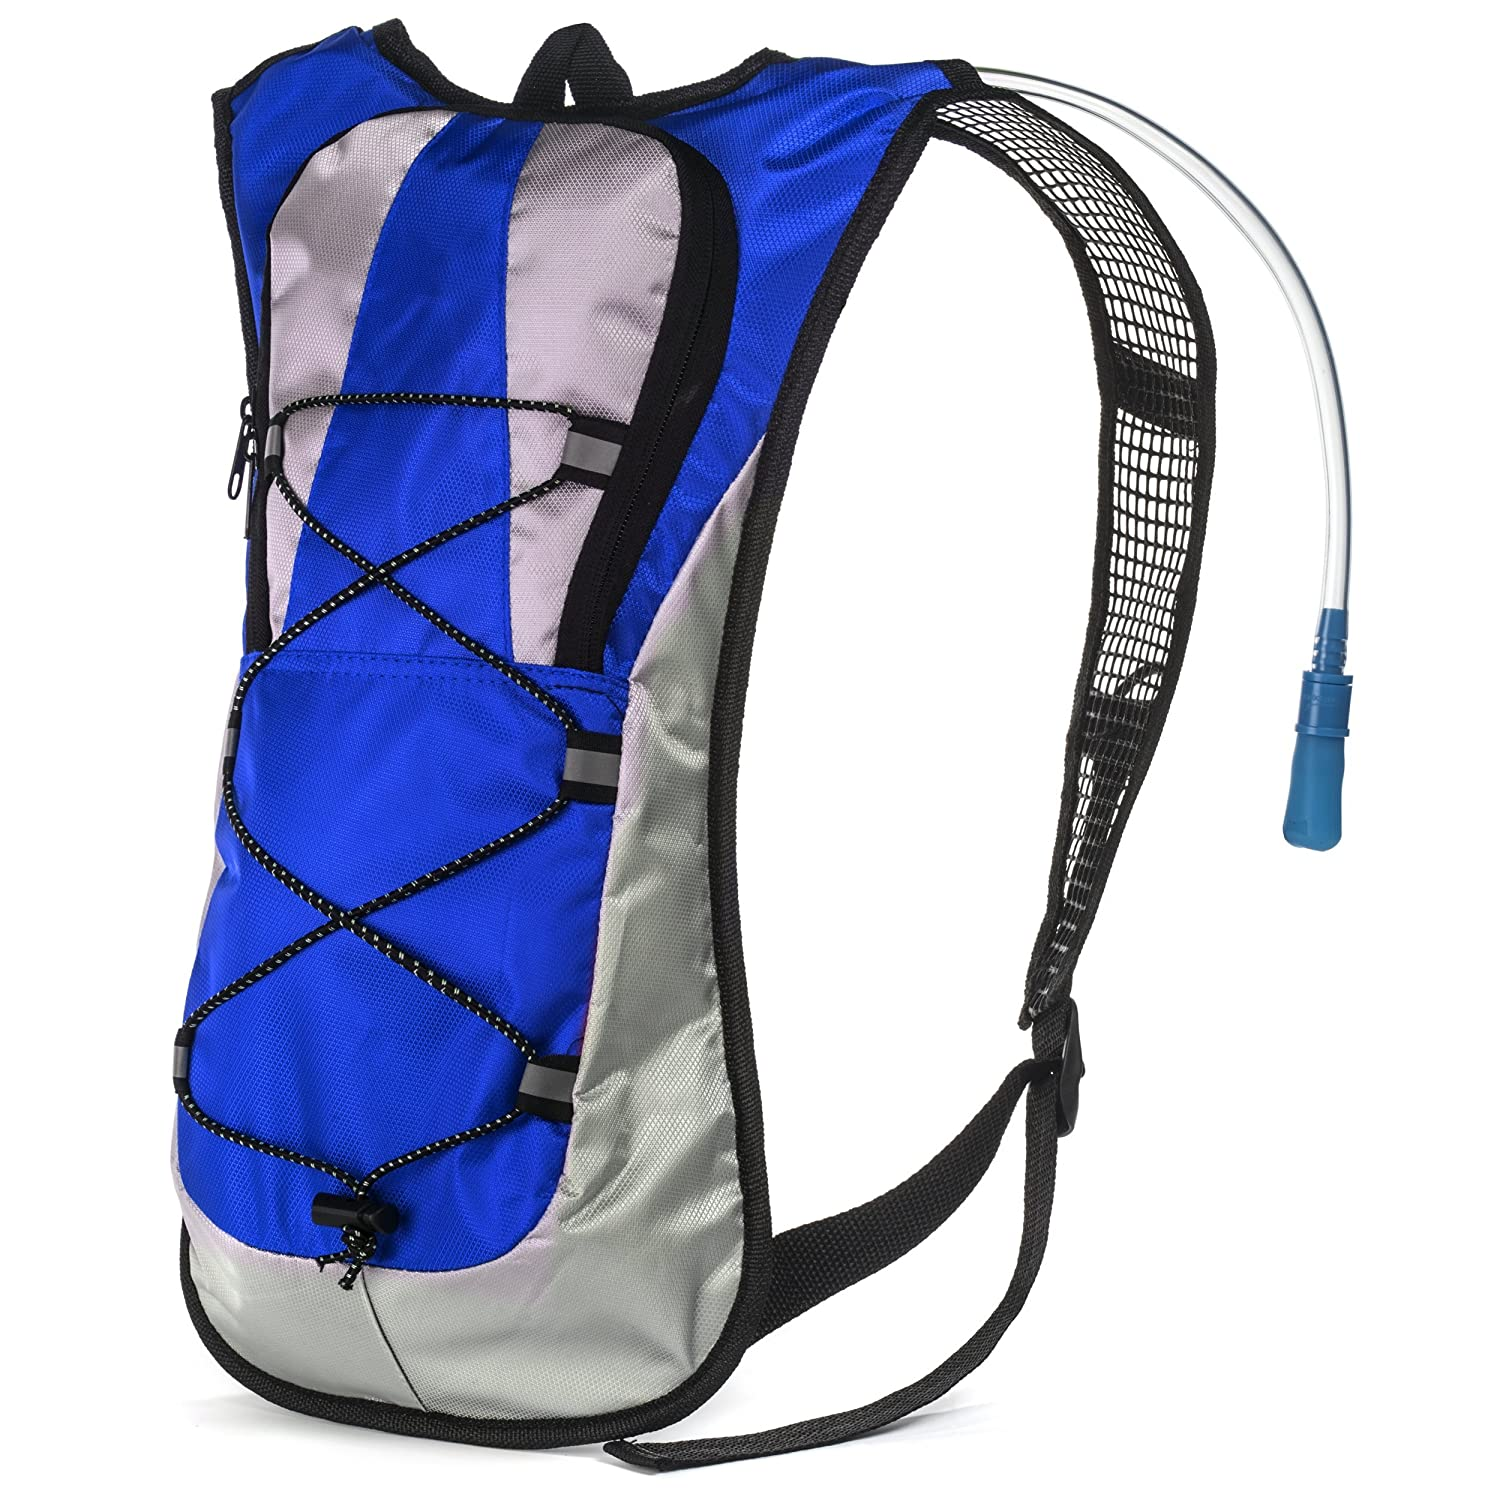 Hydration Pack with 1.5 L Water Backpack Bladder. Adjustable Straps Fits Men, Women or Kids. Ideal for Running, Cycling, Bike hiking, Climbing or Hunting. Lightweight 70 Oz and Waterproof Means You ll Never Run Out of Water When You Need It Most.